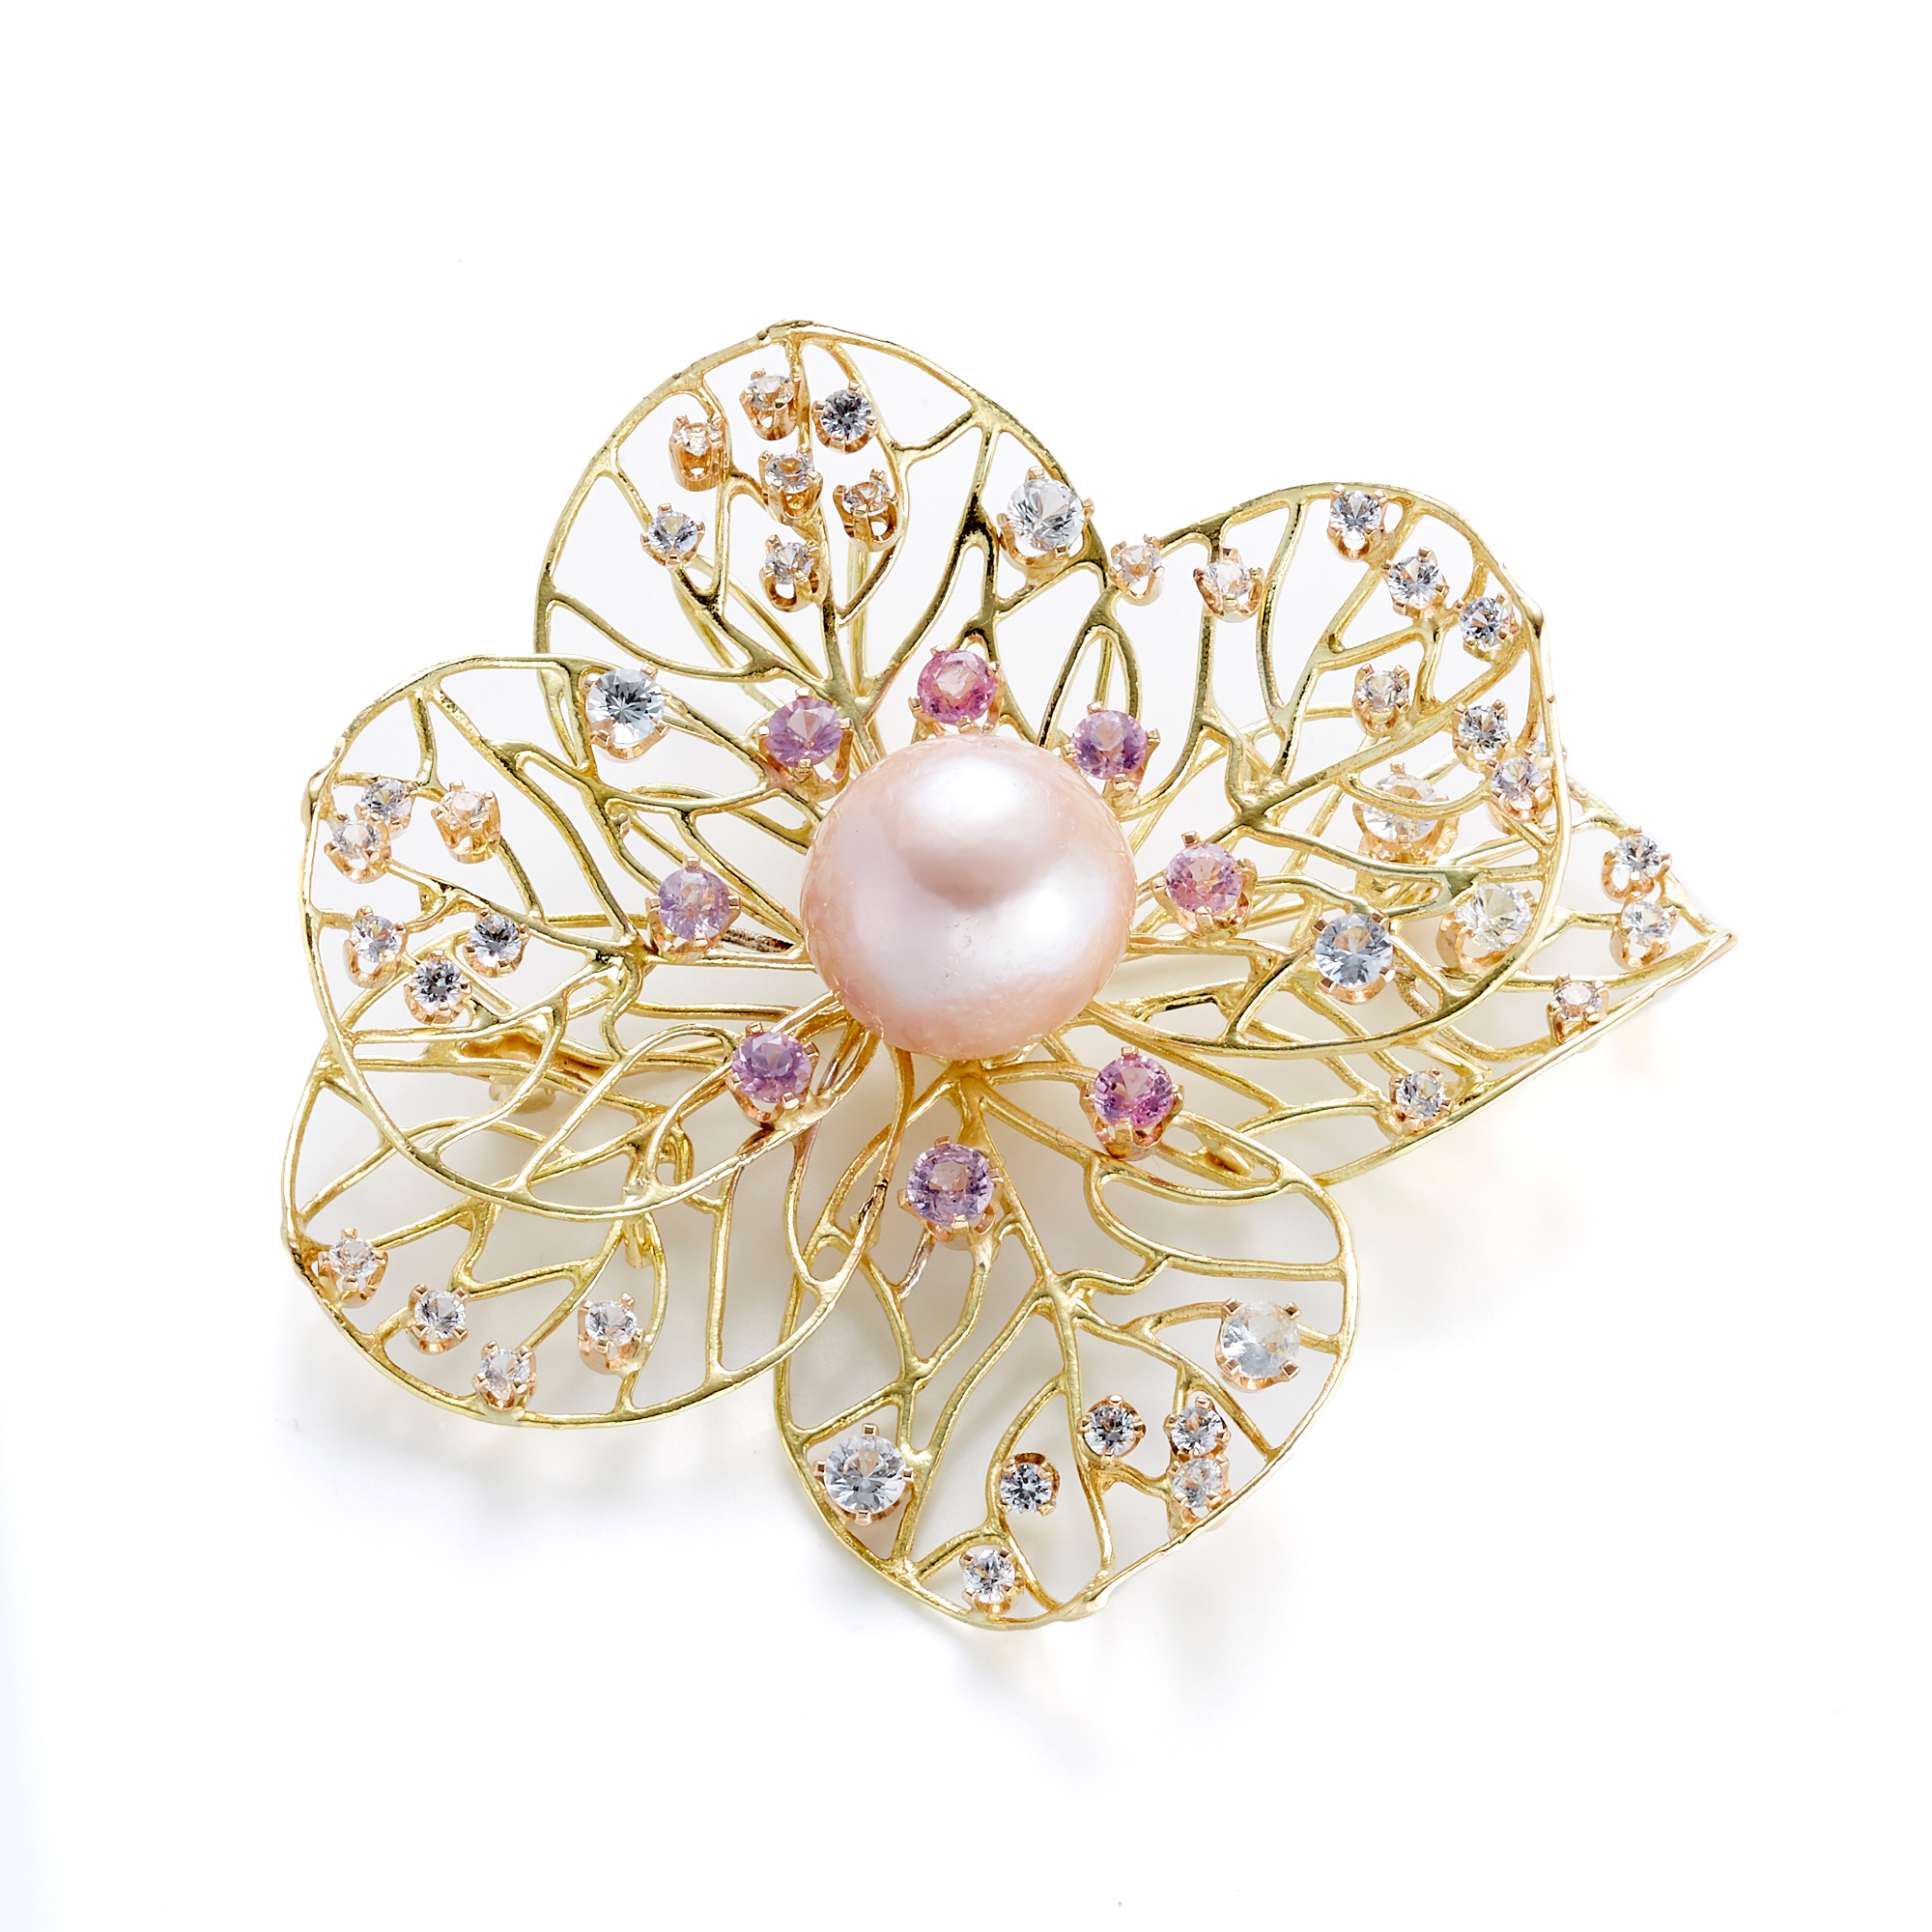 Russell Trusso Pink Pearl & Sapphire Openwork Flower Brooch